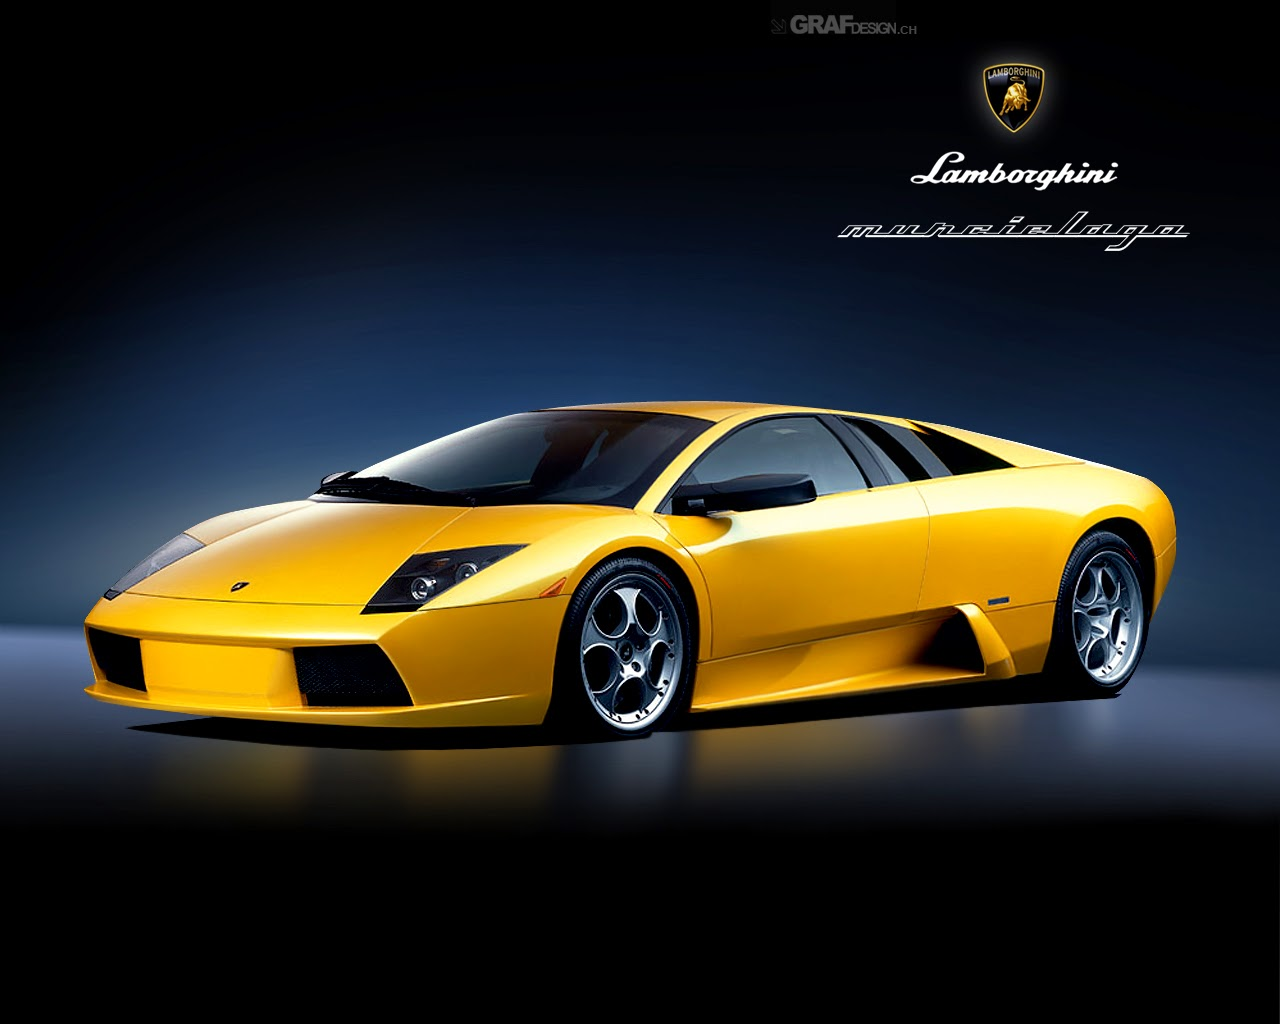 Download Wallpaper Mobil Sport Ferrari Lamborghini Murcielago